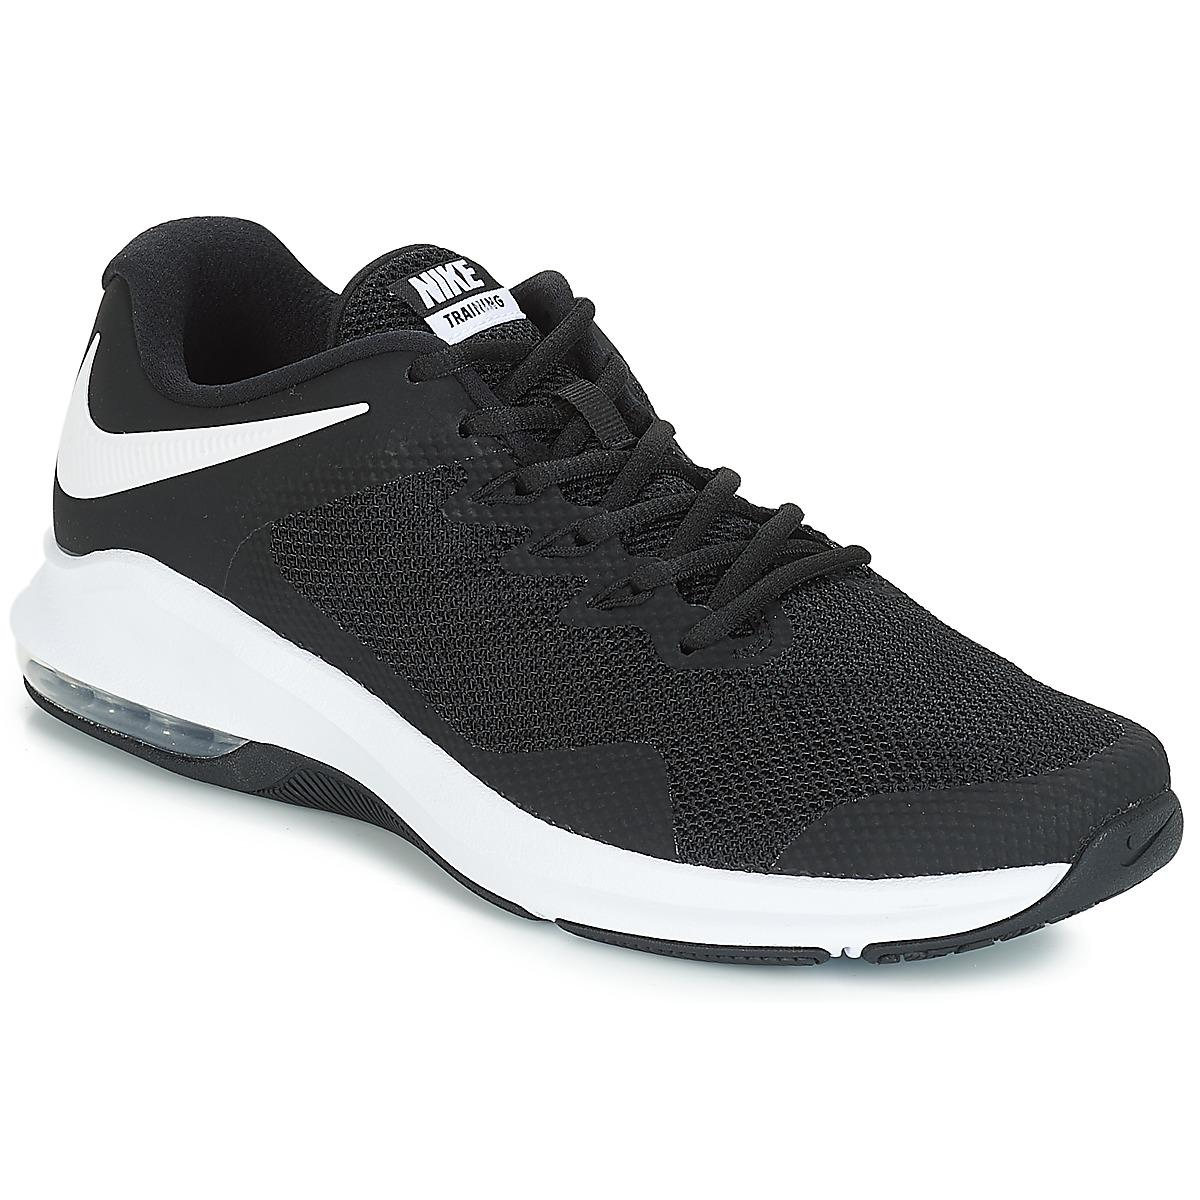 2902084b4baa94 Nike Air Max Alpha Trainer Men s Trainers In Black in Black for Men ...